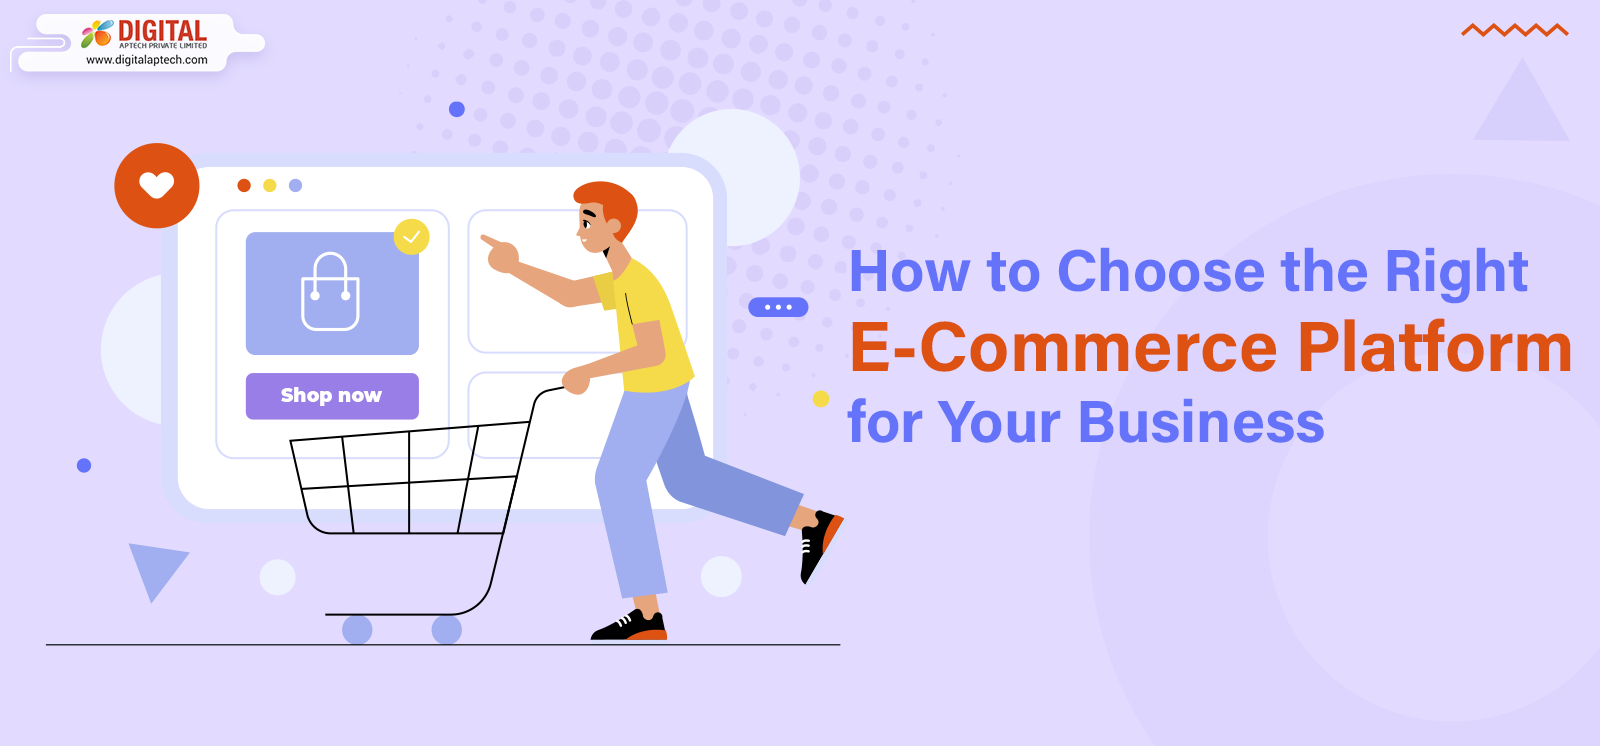 How to Choose the Right E-Commerce Platform for Your Business